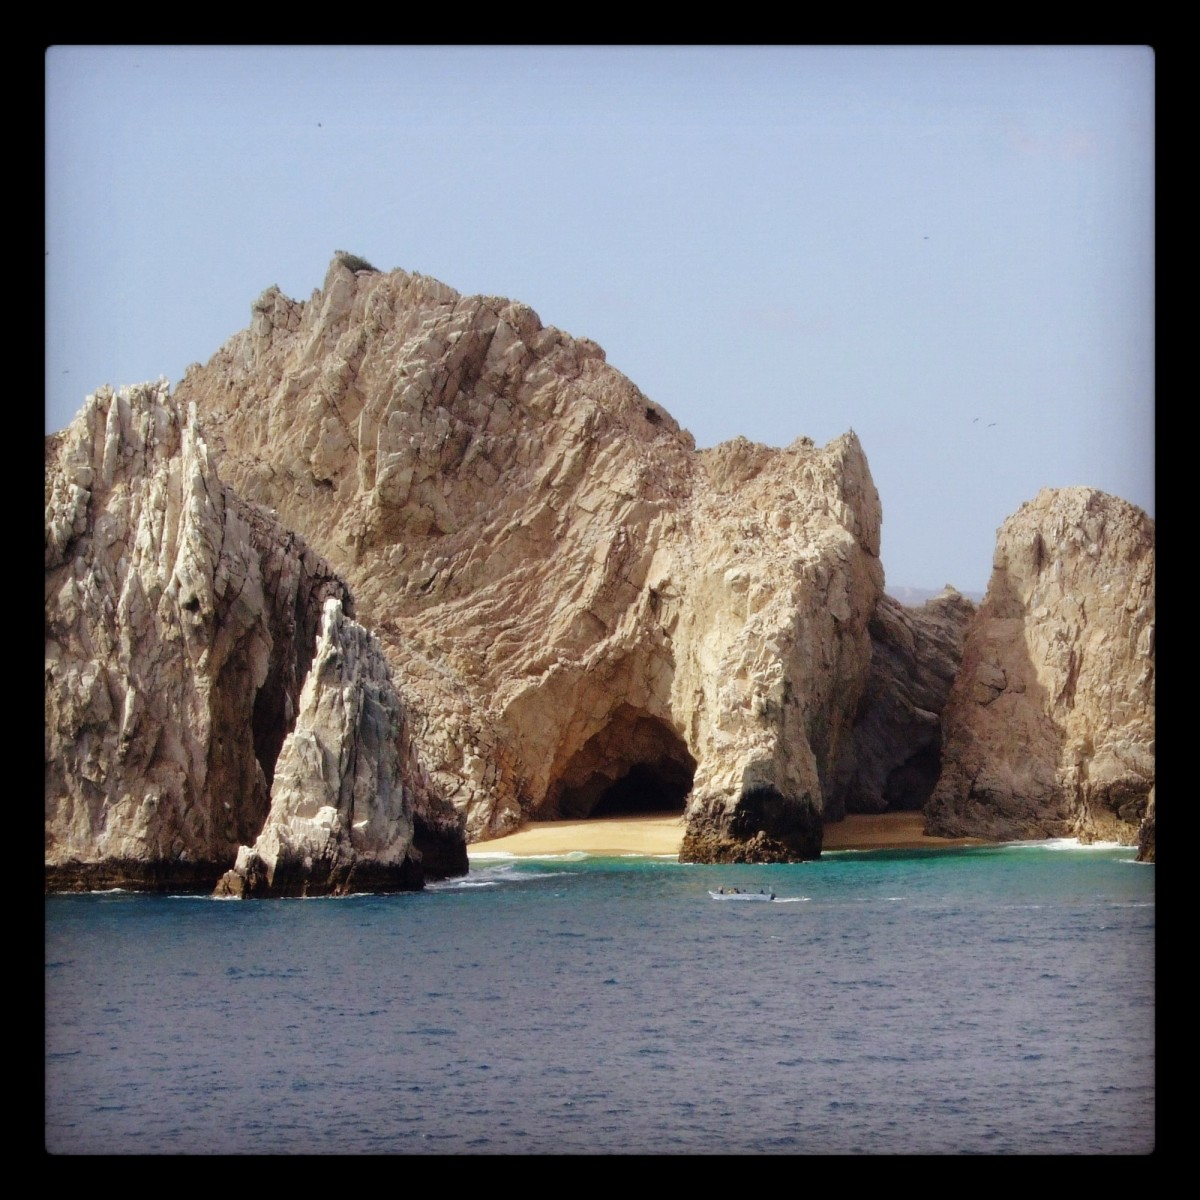 The blue waters of Cabo San Lucas.